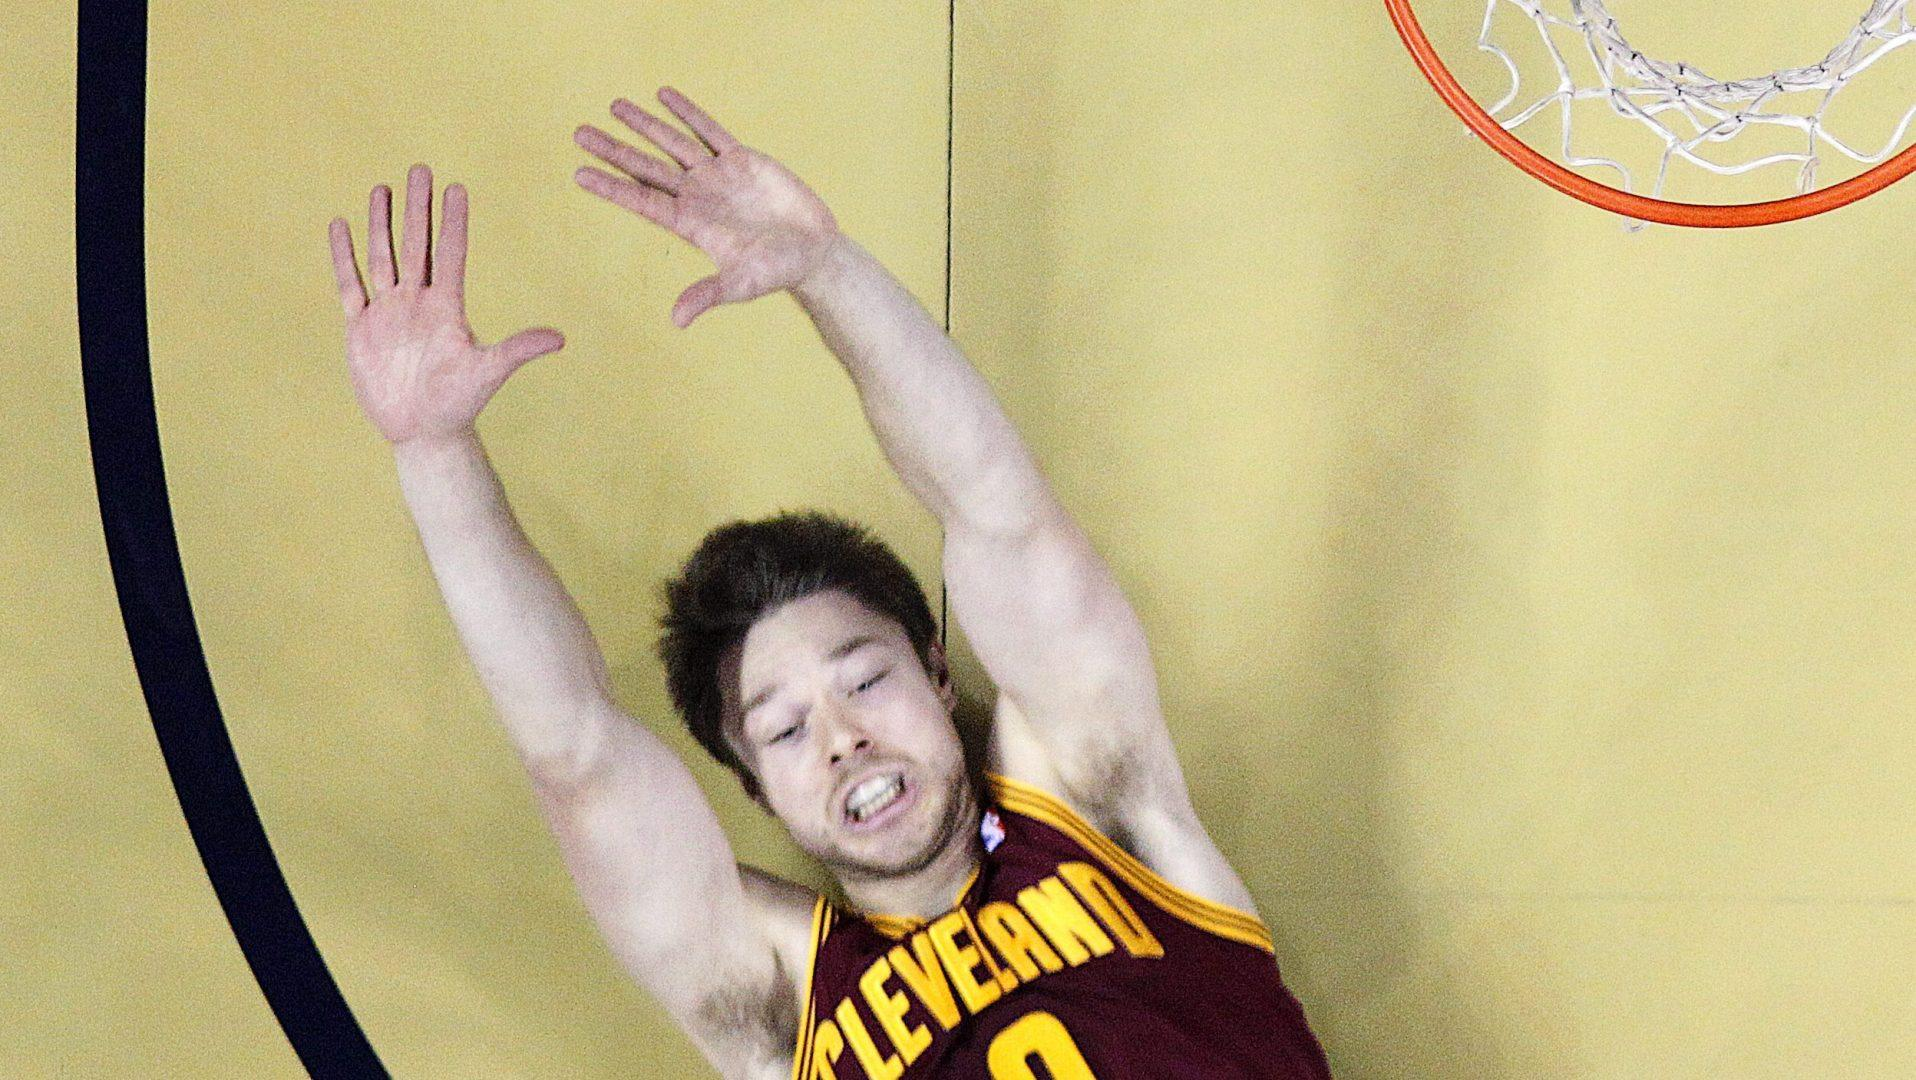 Matthew Dellavedova receives standing ovation in return to Cleveland (VIDEO)